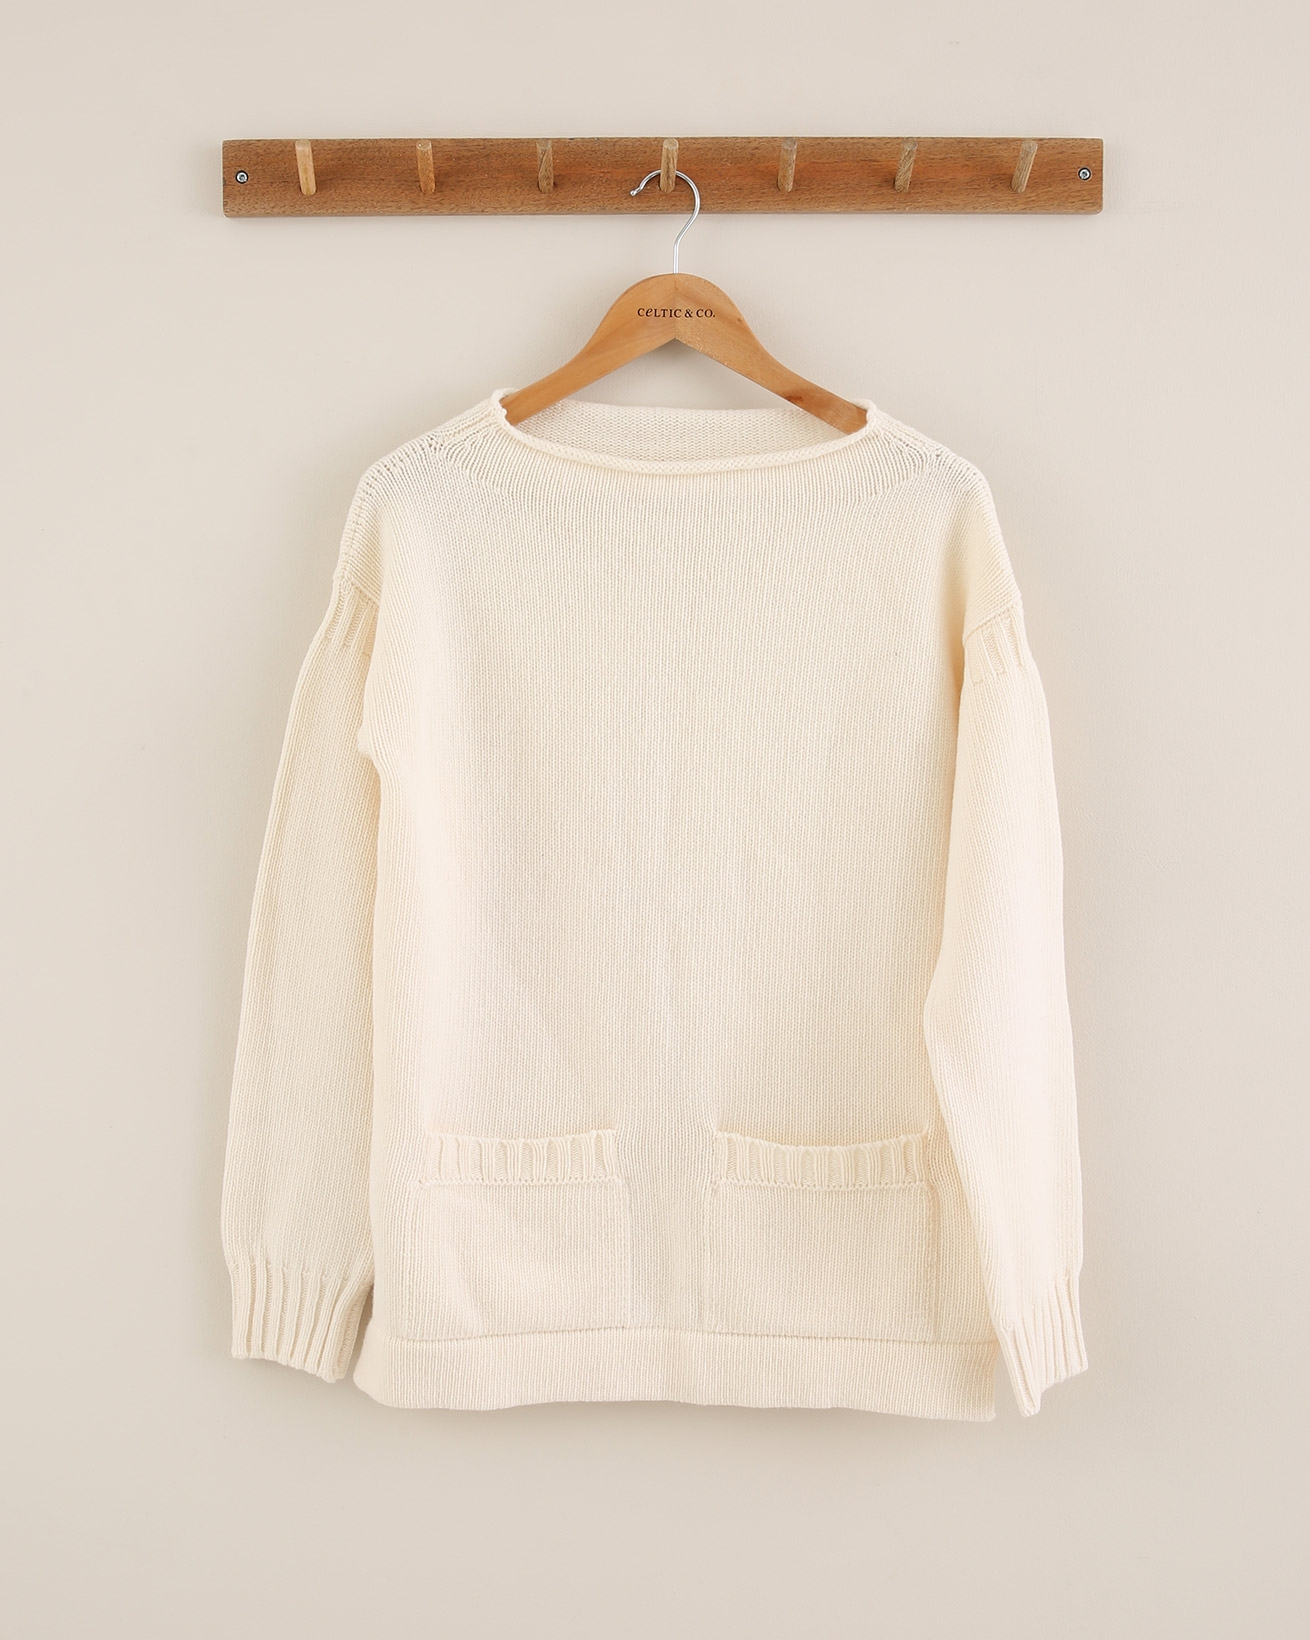 Pocket Detail Funnel Neck Jumper - Size Small - Ivory - 1806